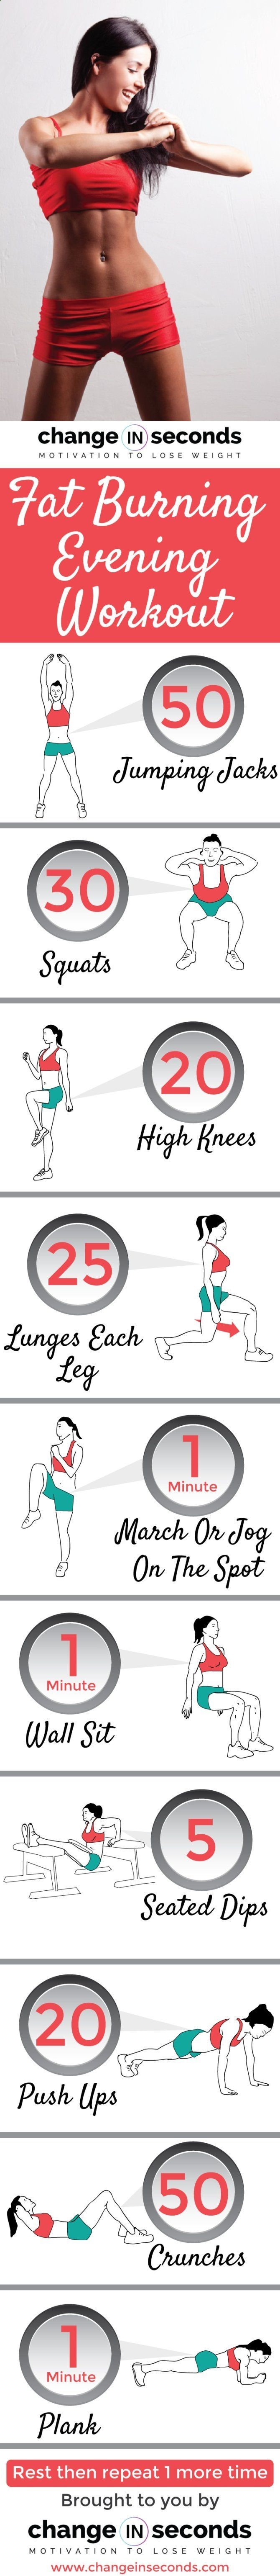 Quickest way to lose weight with slim fast